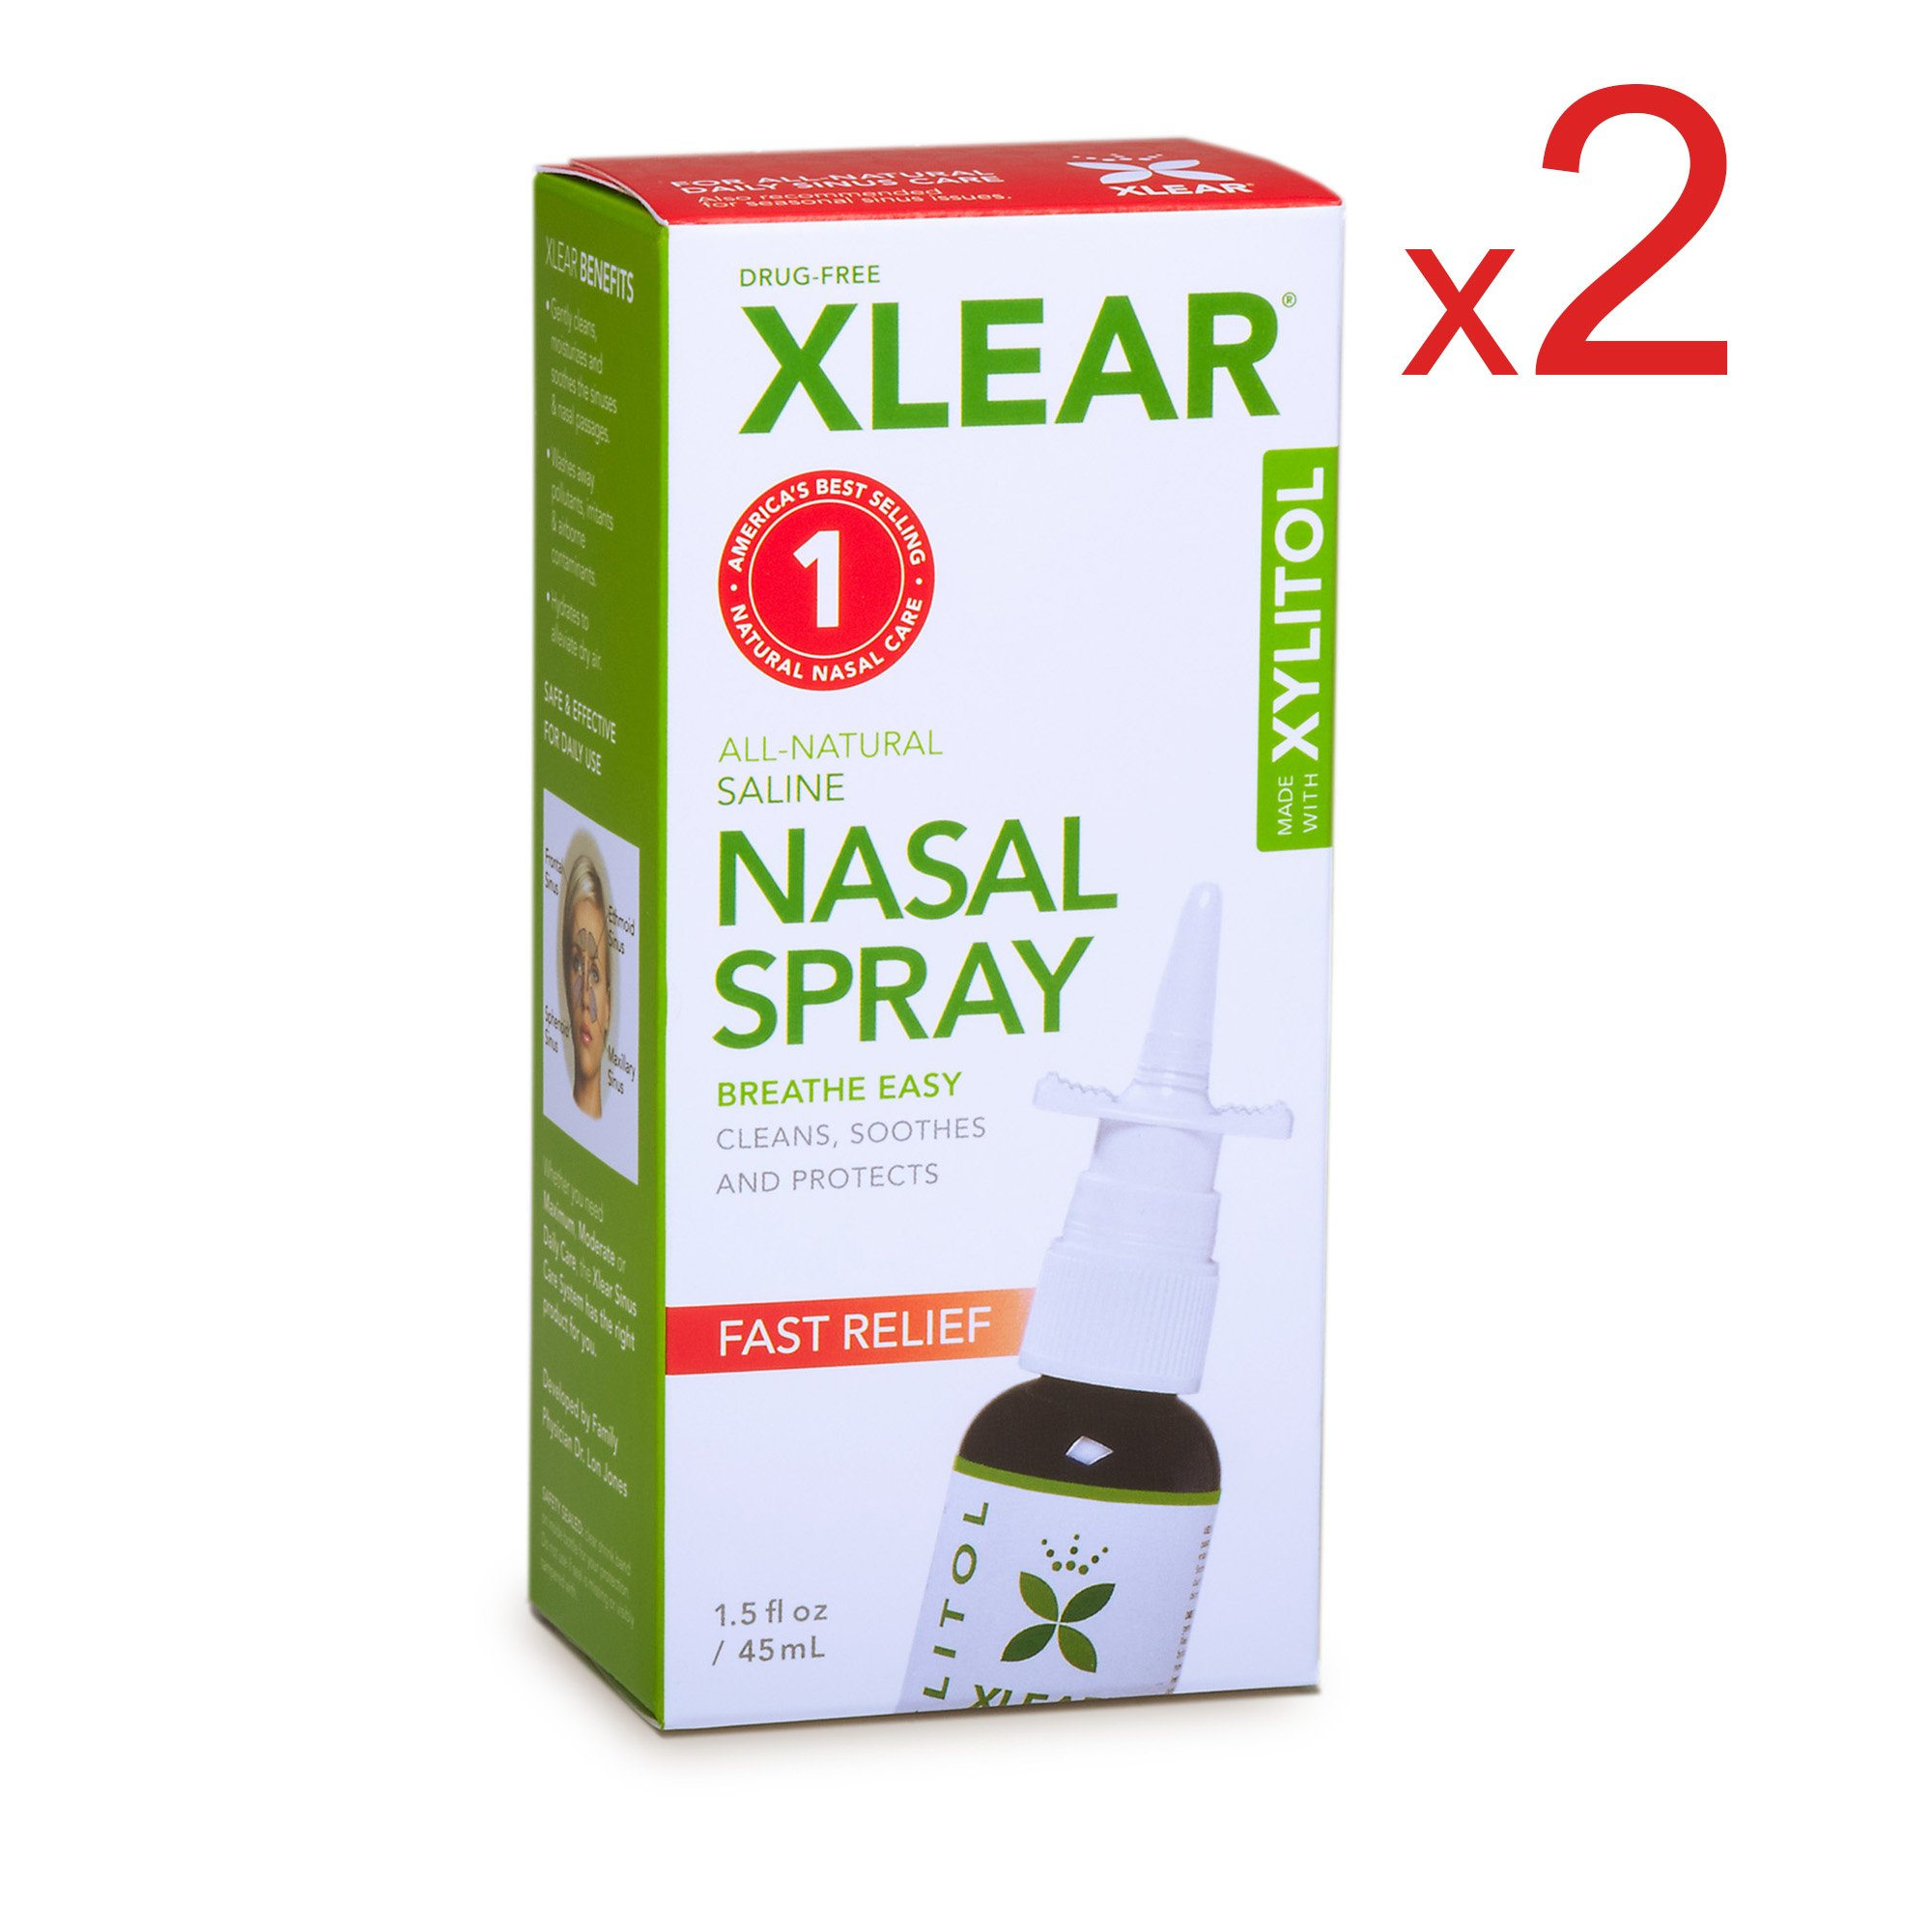 XLEAR Nasal Spray, All-Natural Saline and Xylitol Moisturizing Sinus Care - Immediate and Drug Free Relief From Congestion, Allergies, and Dry Sinuses, 1.5 Ounce (Pack of 2)